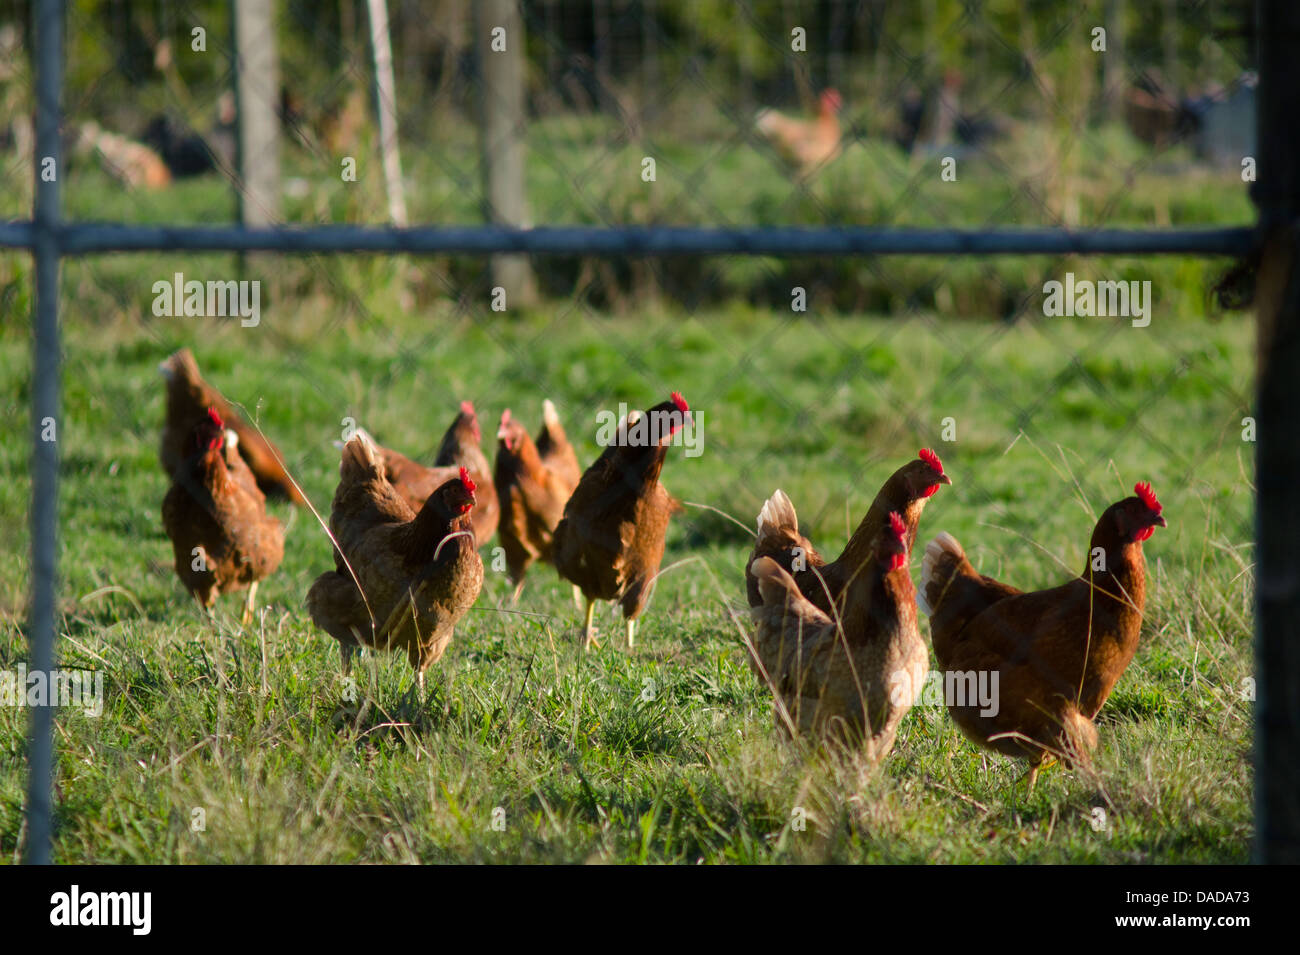 Free range egg-laying hens in a chicken farm. - Stock Image